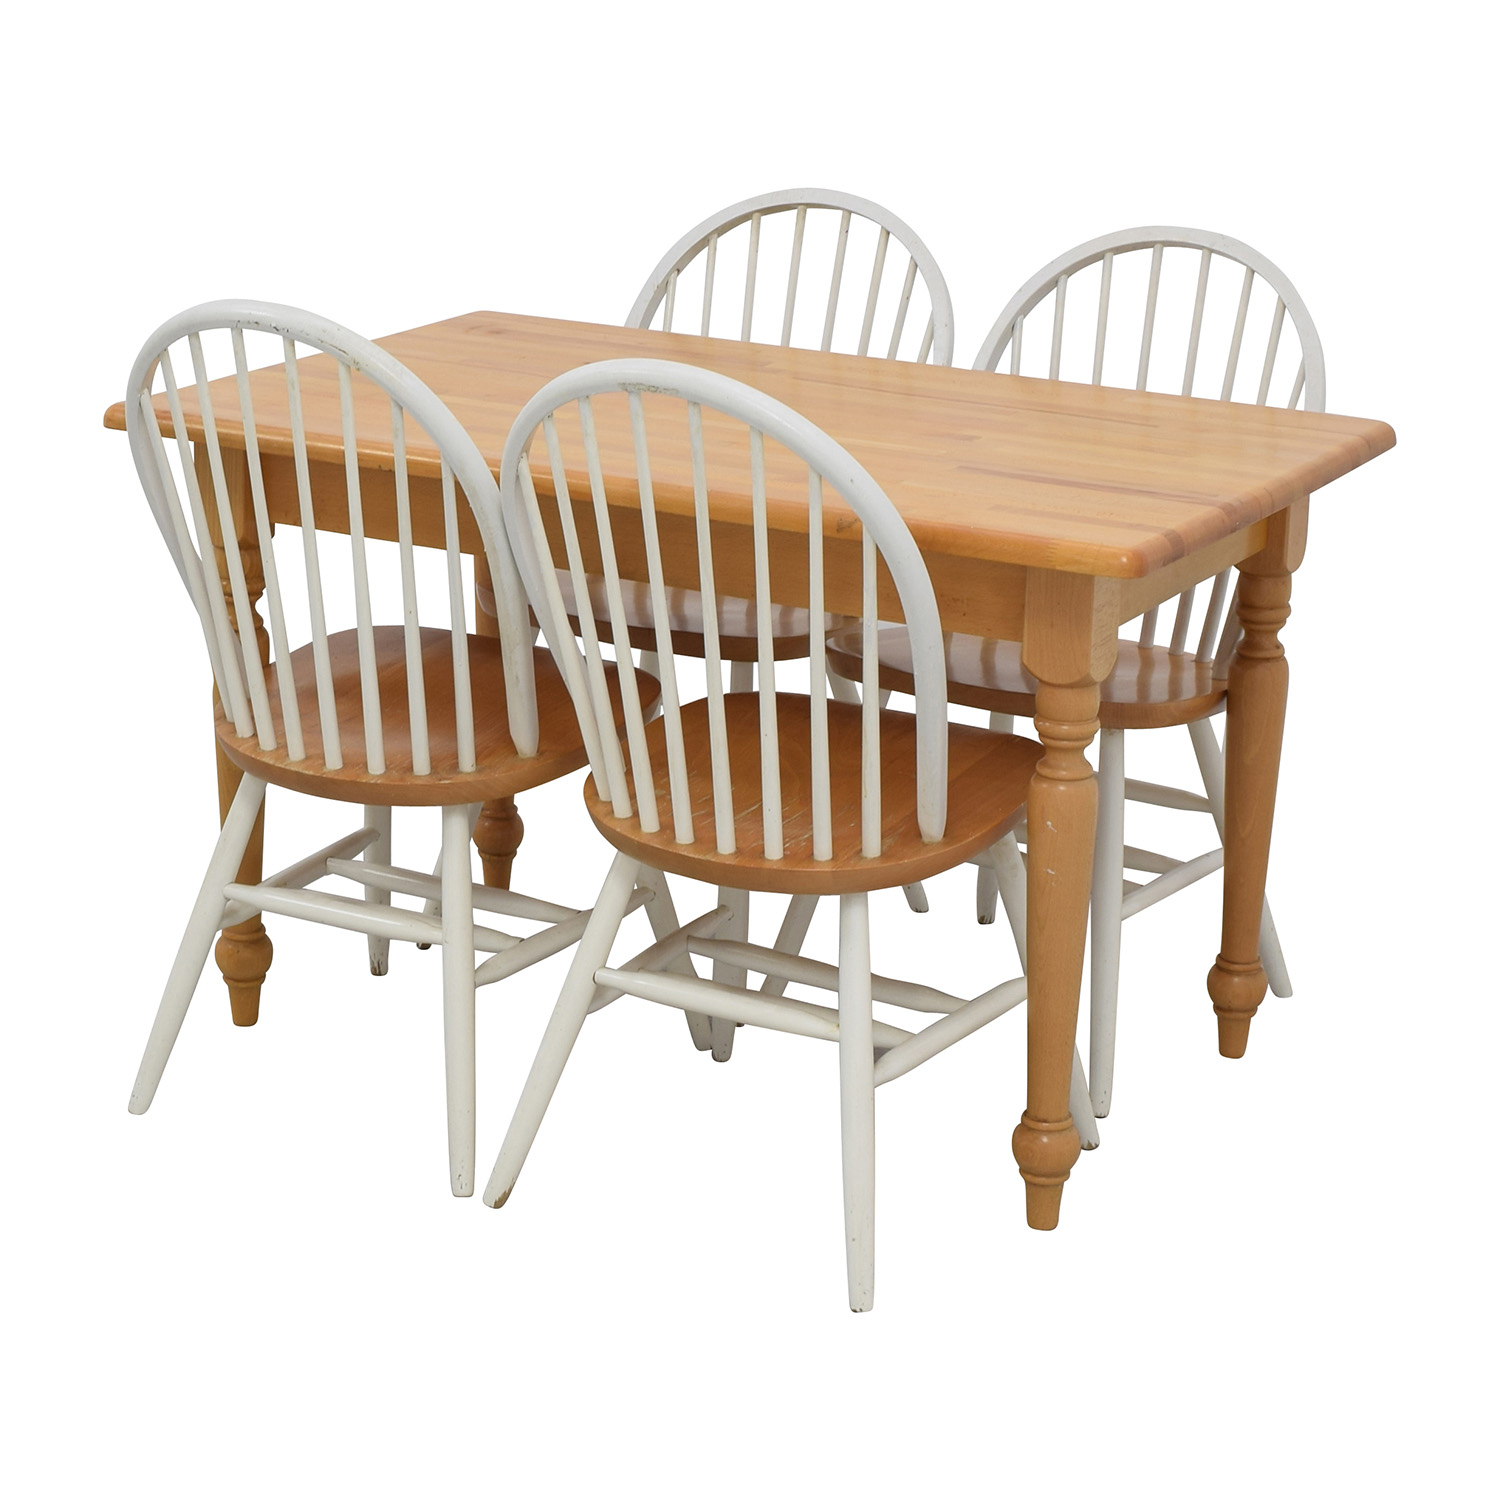 84 off butcher block kitchen table and four chairs tables for 4 chair kitchen table set